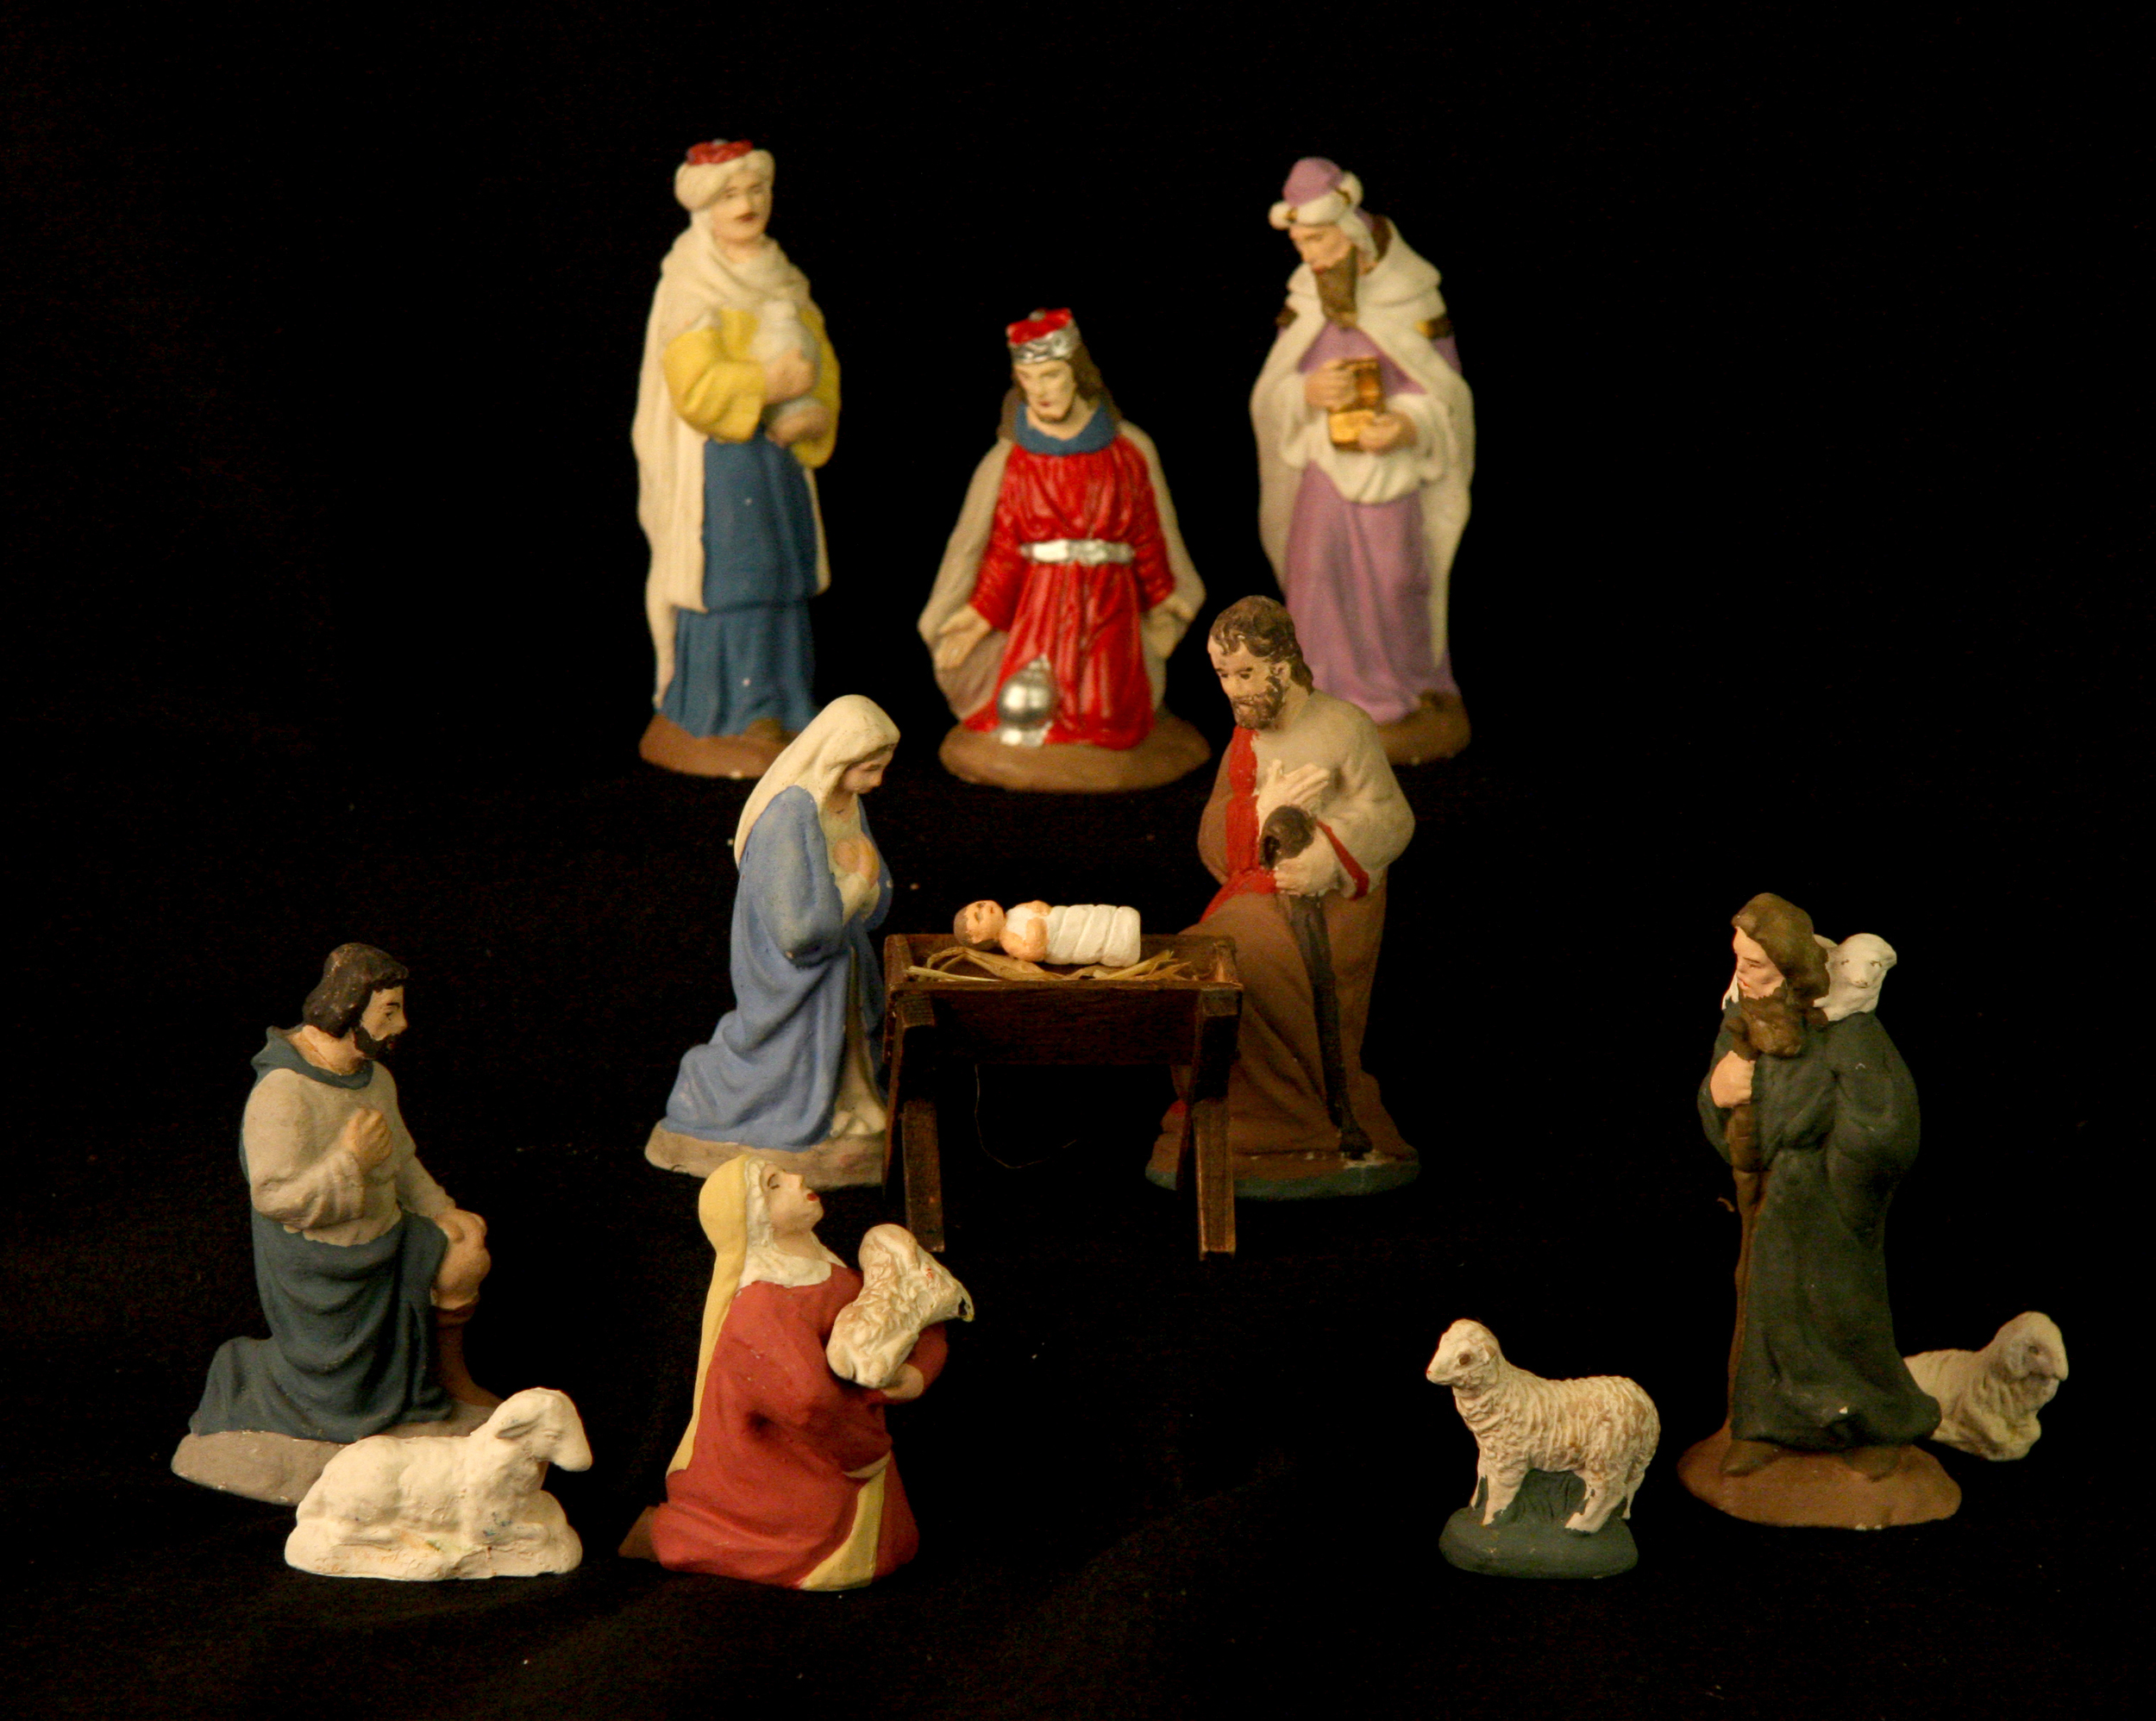 Theta Alpha, an organization for New Church women, began making chalkware Nativities in 1951, and continued the tradition until the early 1990s. The sets were initially made by teams of women working in the basement of Bryn Athyn Cathedral, and sent to families around the world who did not live near a New Church congregation. Collection of Glencairn Museum, gift of Theta Alpha International.